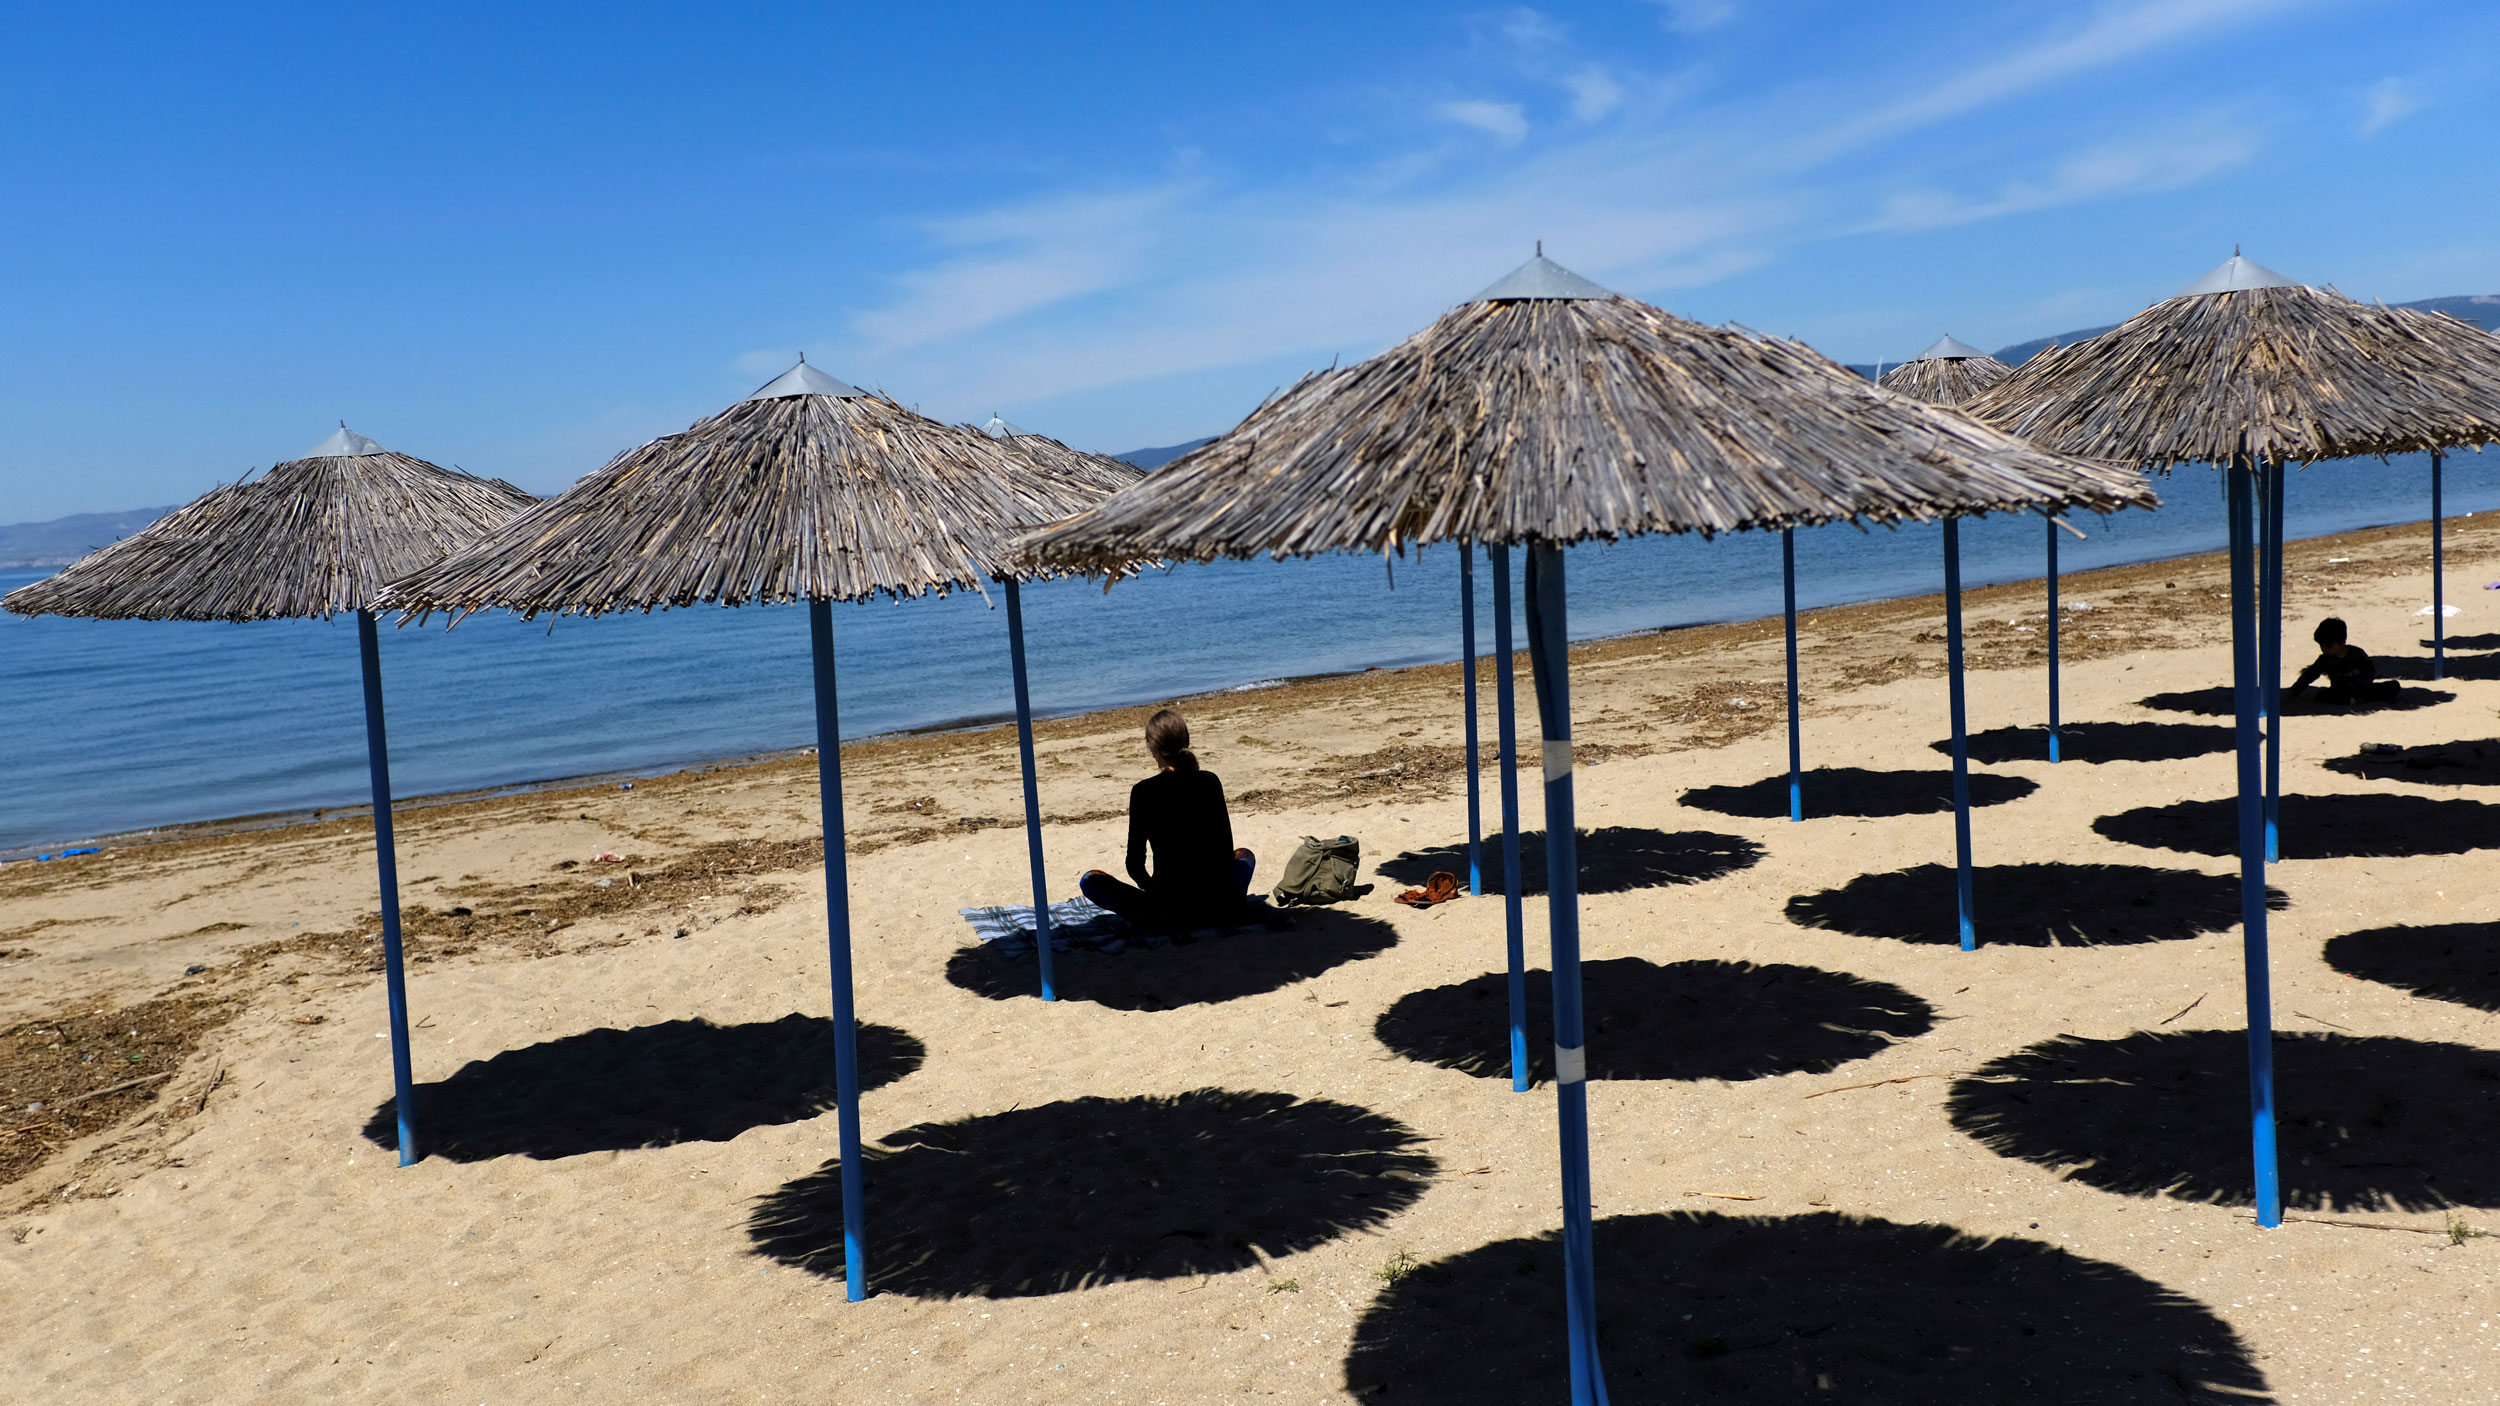 Several rows of thatch umbrellas are shown on a sandy beach with a woman in shadow sitting underneath one of the umbrellas.